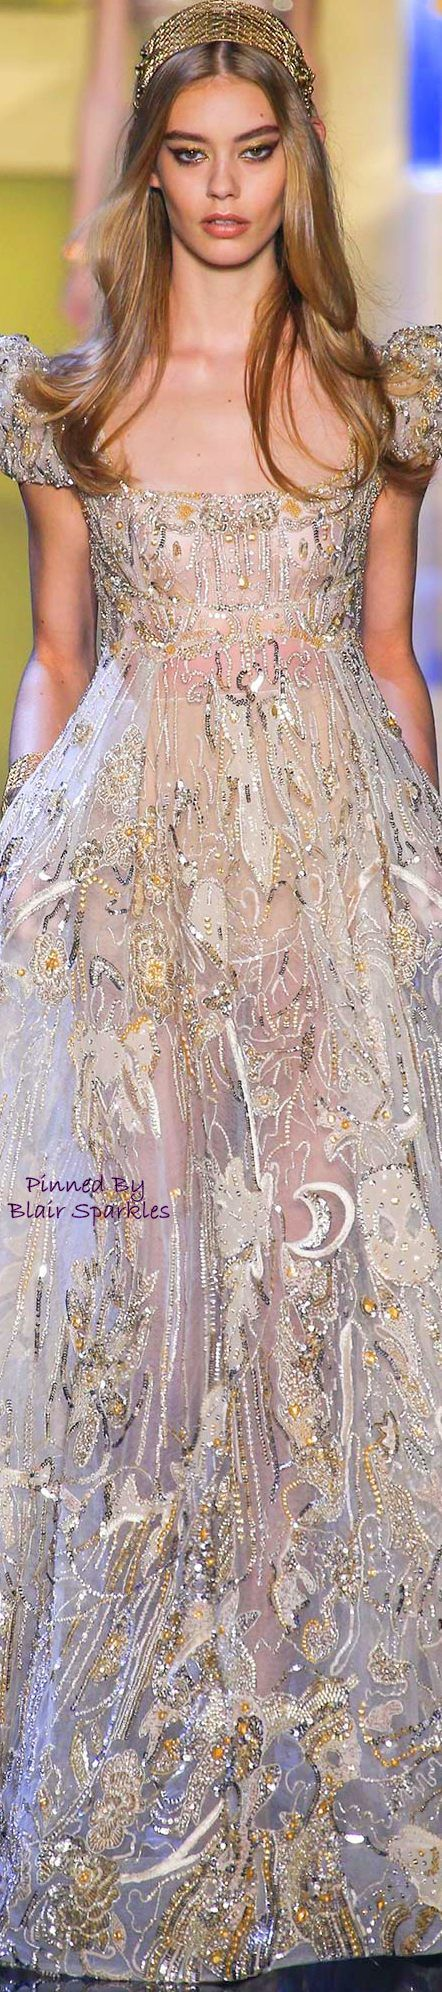 FALL COUTURE 2015 ELIE SAAB (Paris) ♕♚εїз | BLAIR SPARKLES |